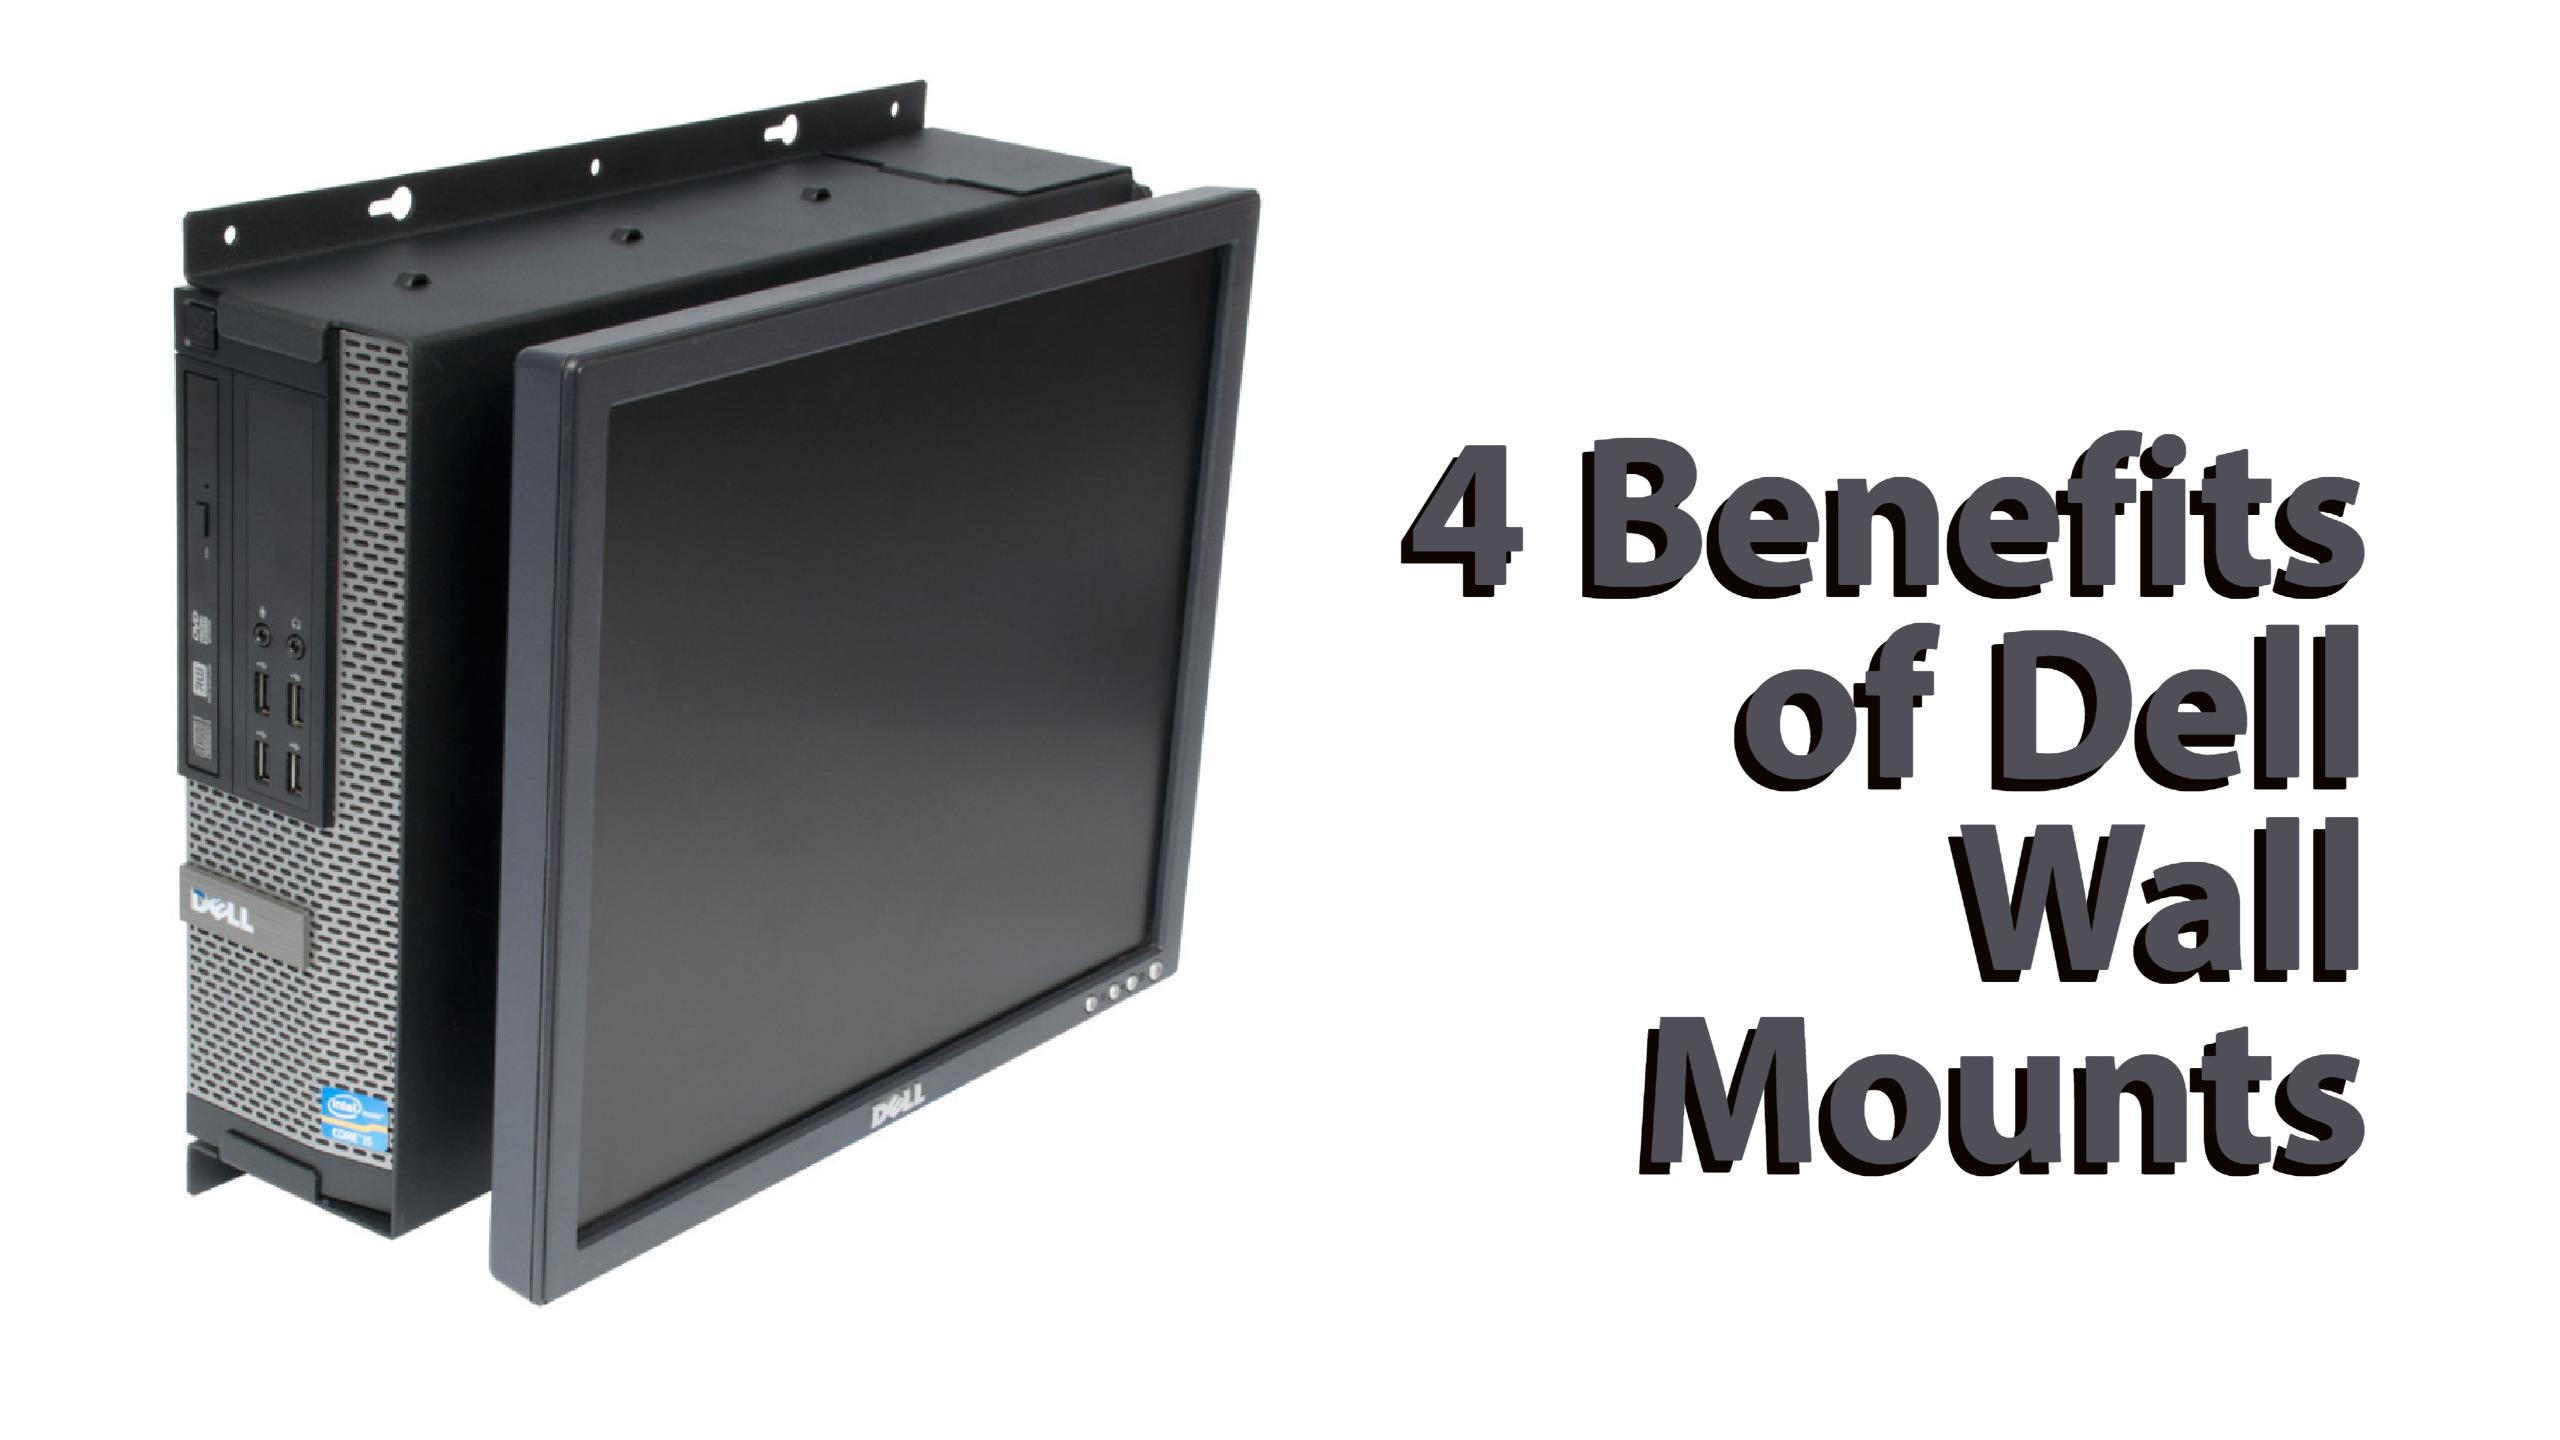 4 Benefits of Dell Wall Mounts